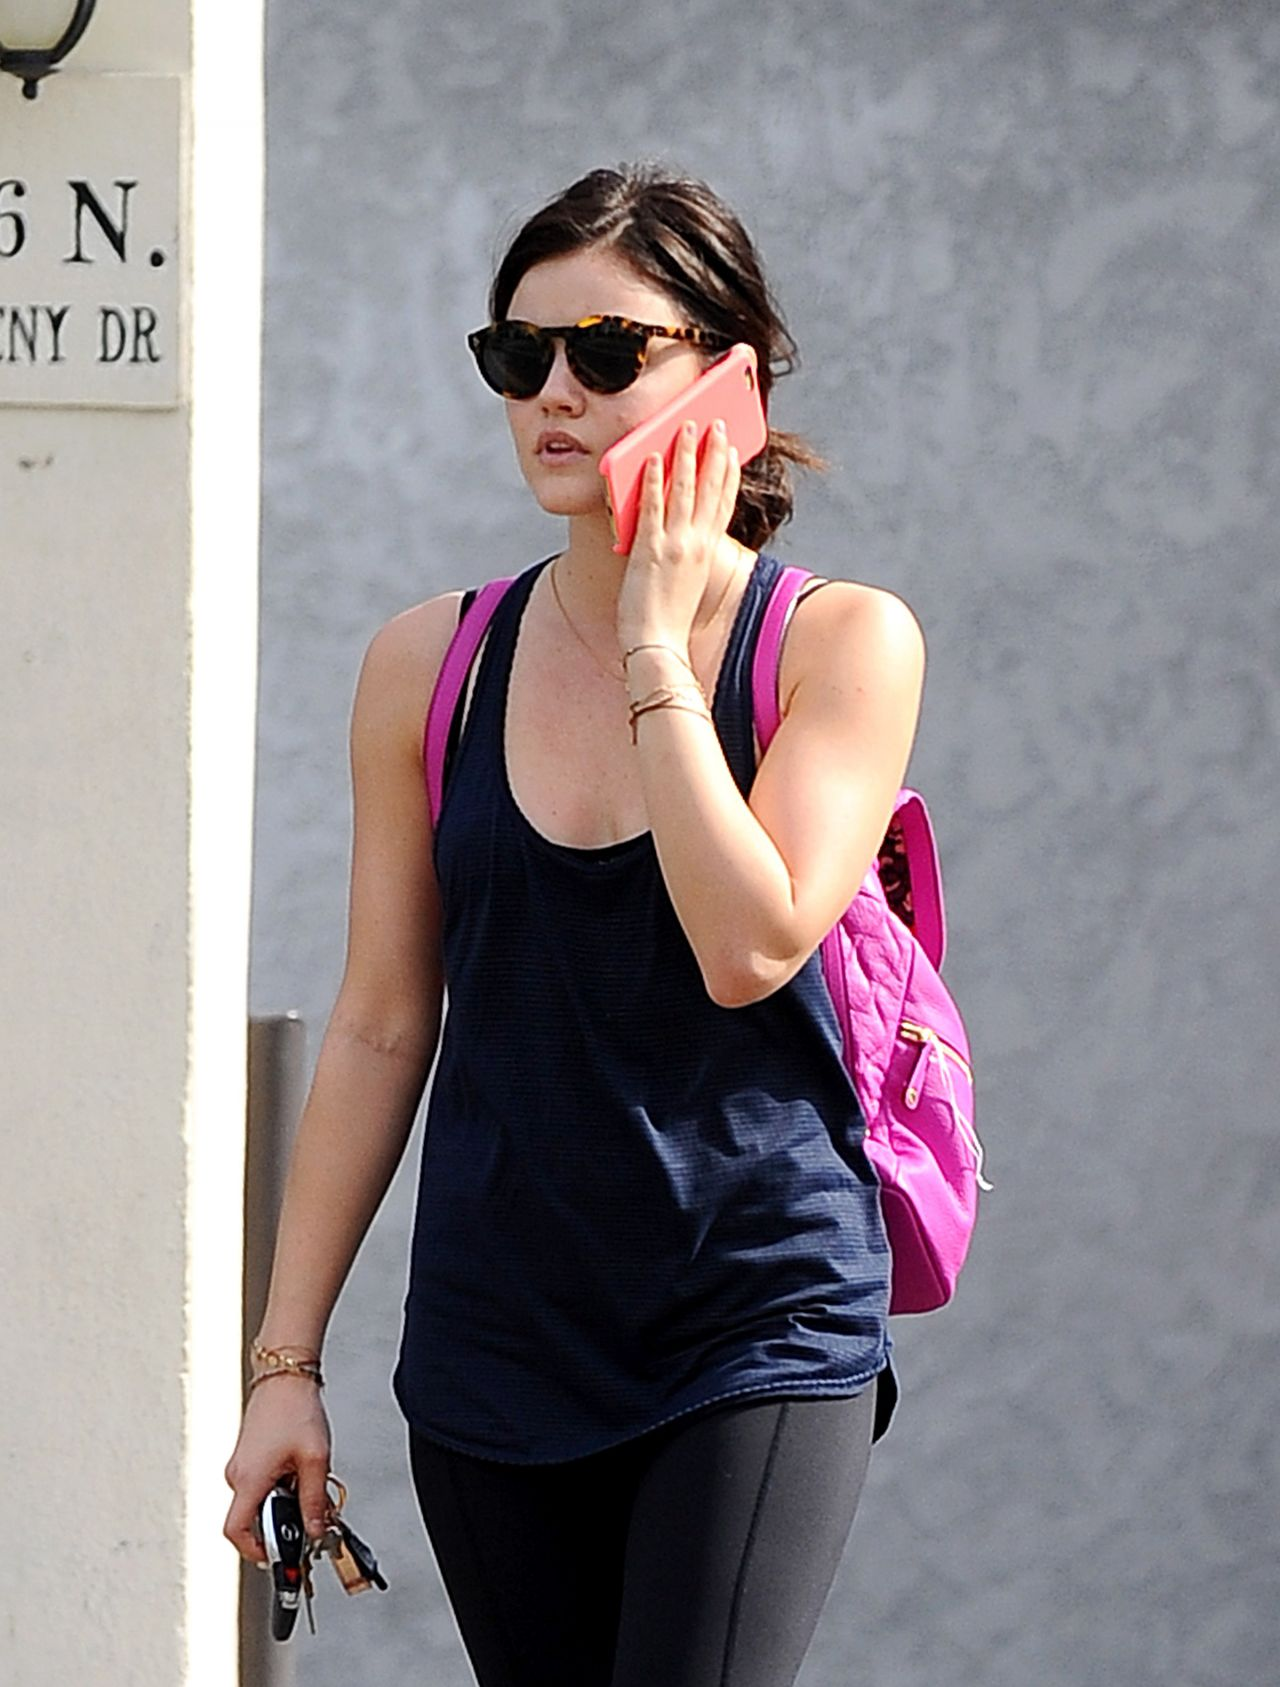 Lucy Hale Street Style - Heading to the Gym in West Hollywood, Feb. 2015